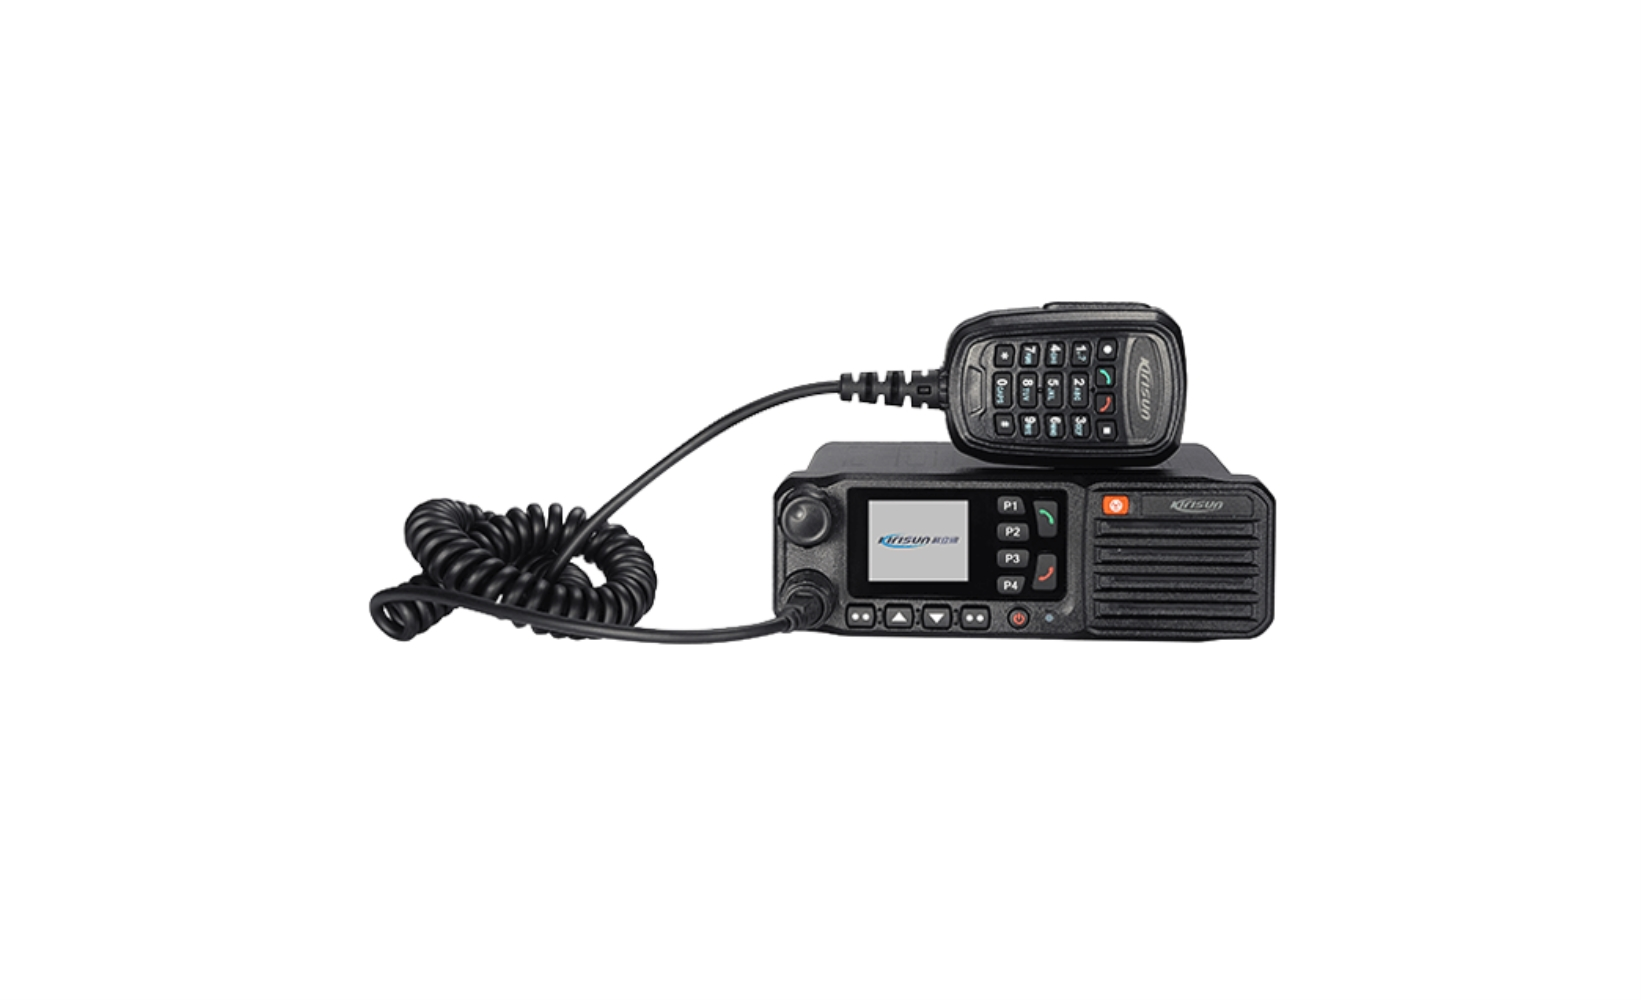 photo of Kirisun TM-840-UHF-40 - 1024 Channel, 40 Watt, UHF Mobile Radio